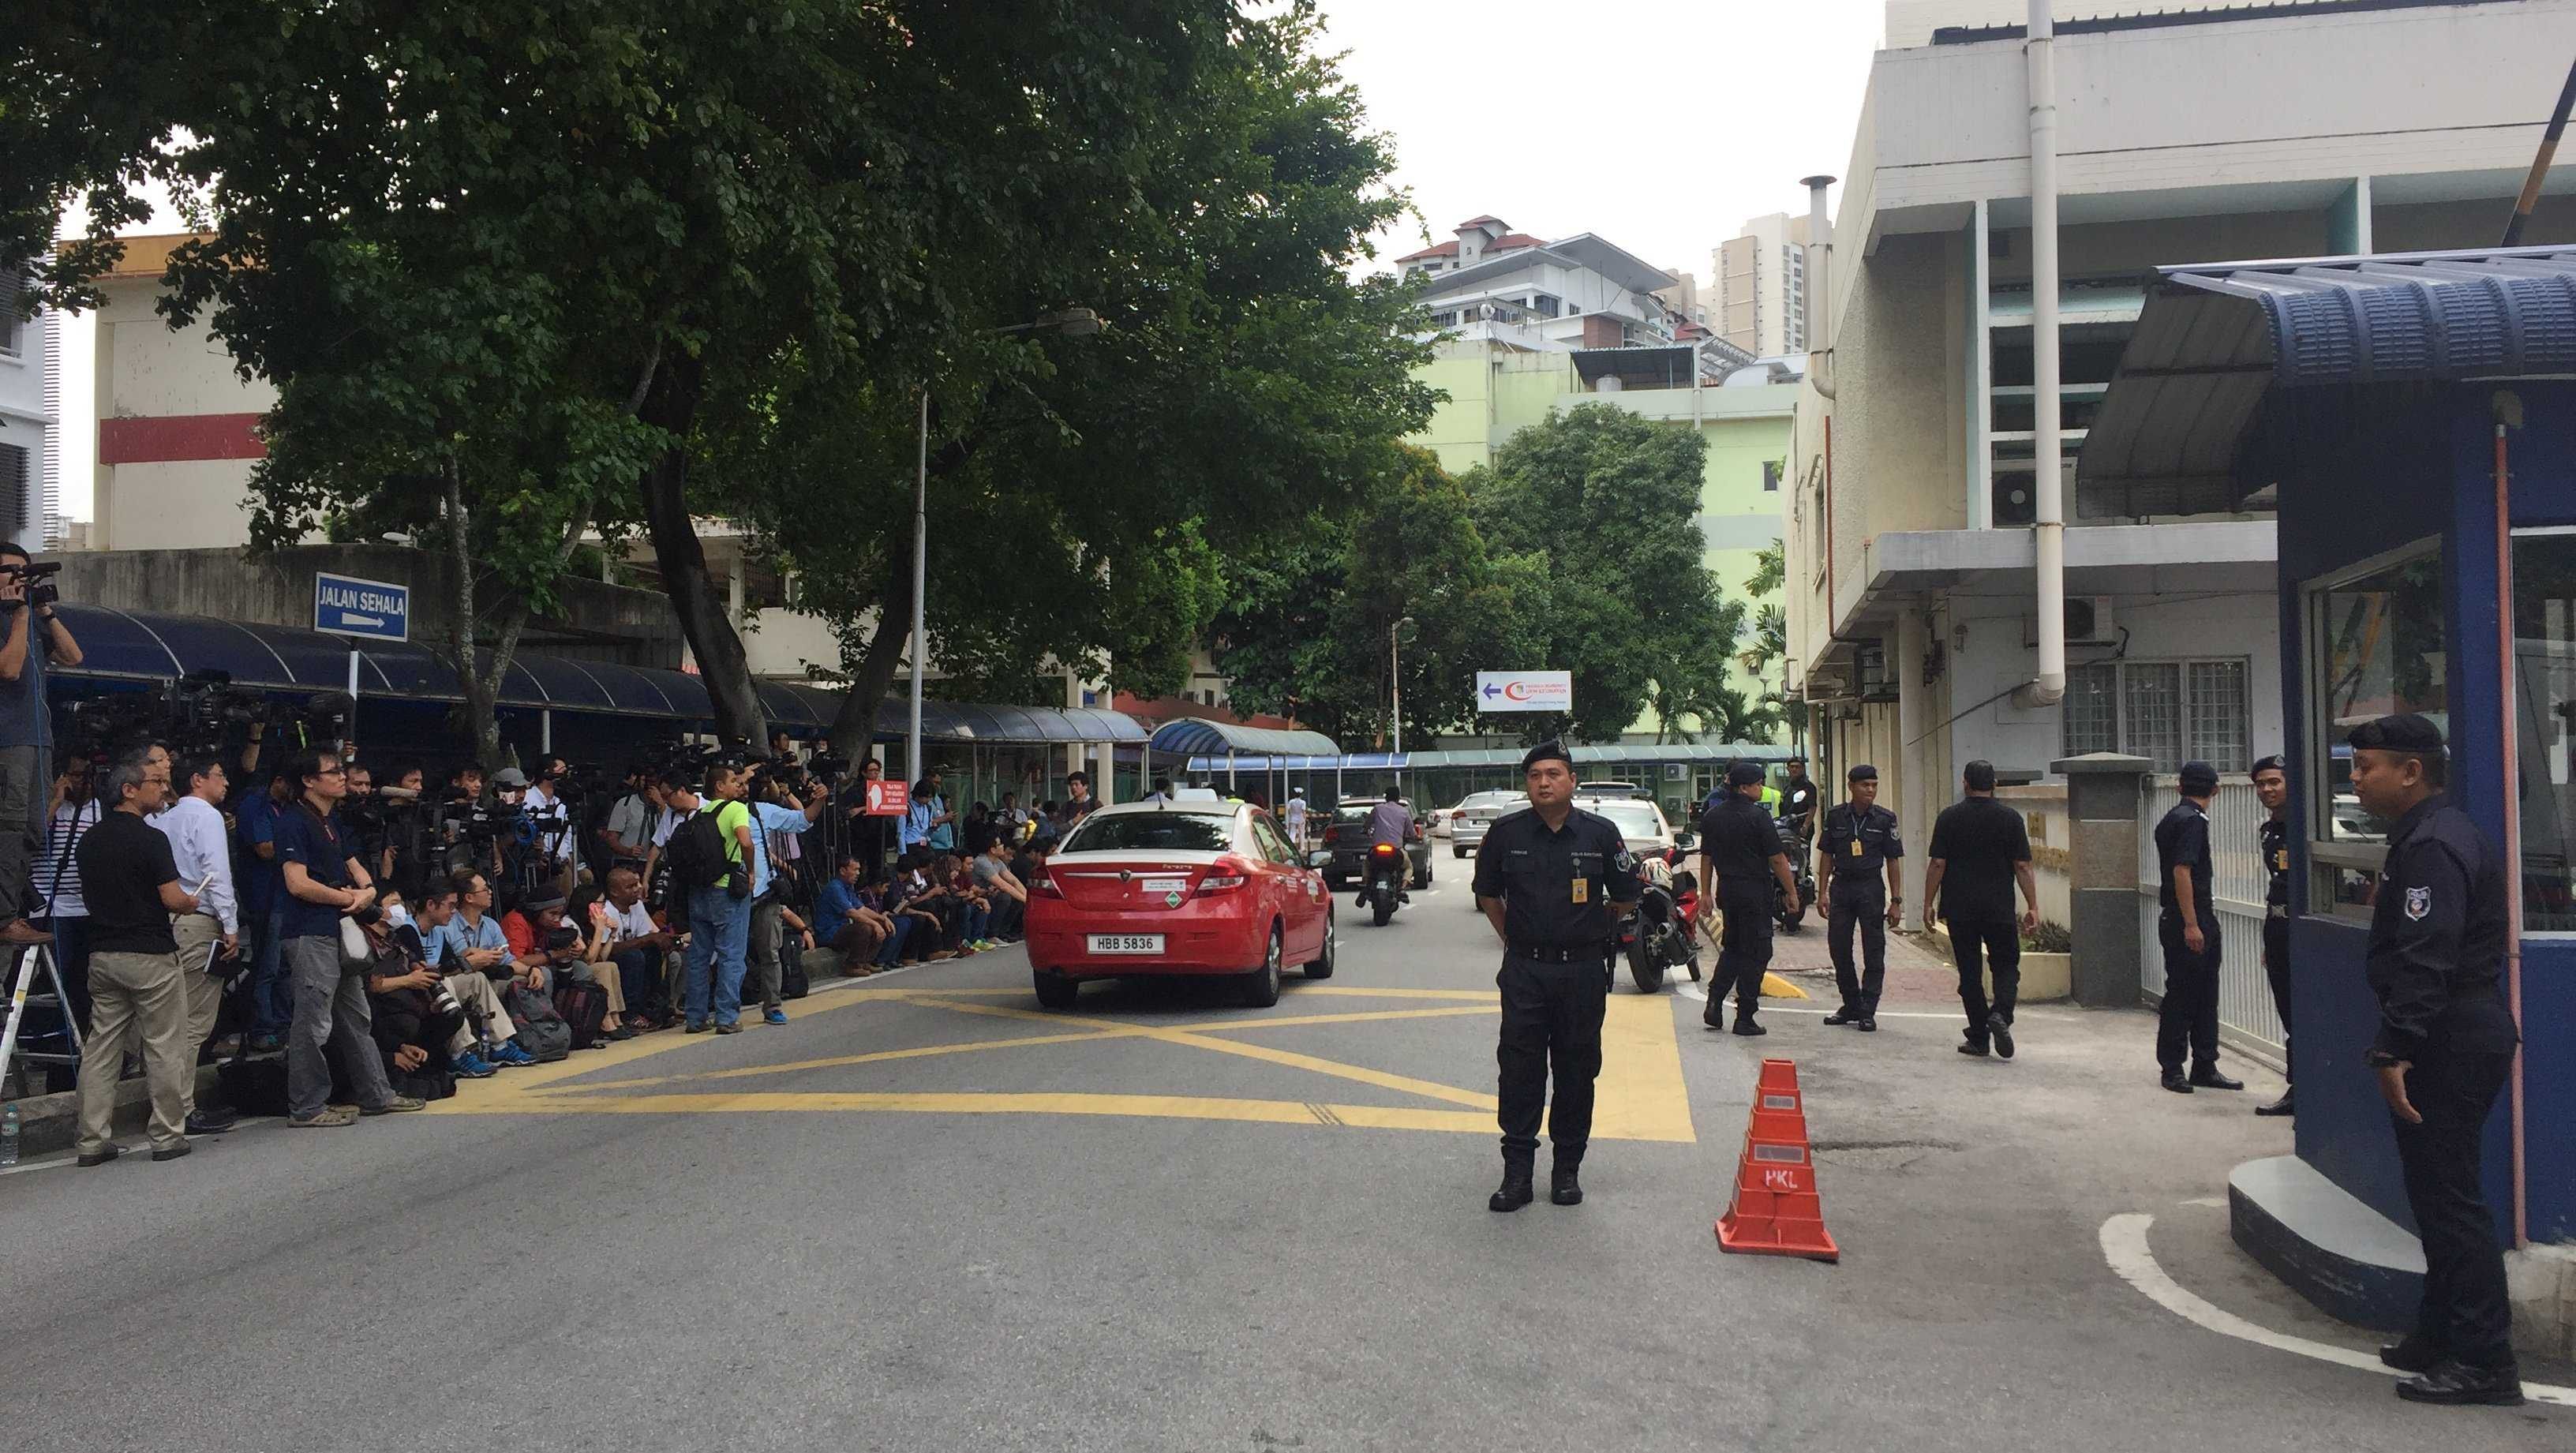 A picture of the scene at the hospital mortuary in Kuala Lumpur, Malaysia, where Kim Jong Un's half-brother, Kim Jong Nam's body is currently located. A woman has been arrested in connection with his murder, Malaysian police said. Investigators are awaiting the results of an autopsy on his body.